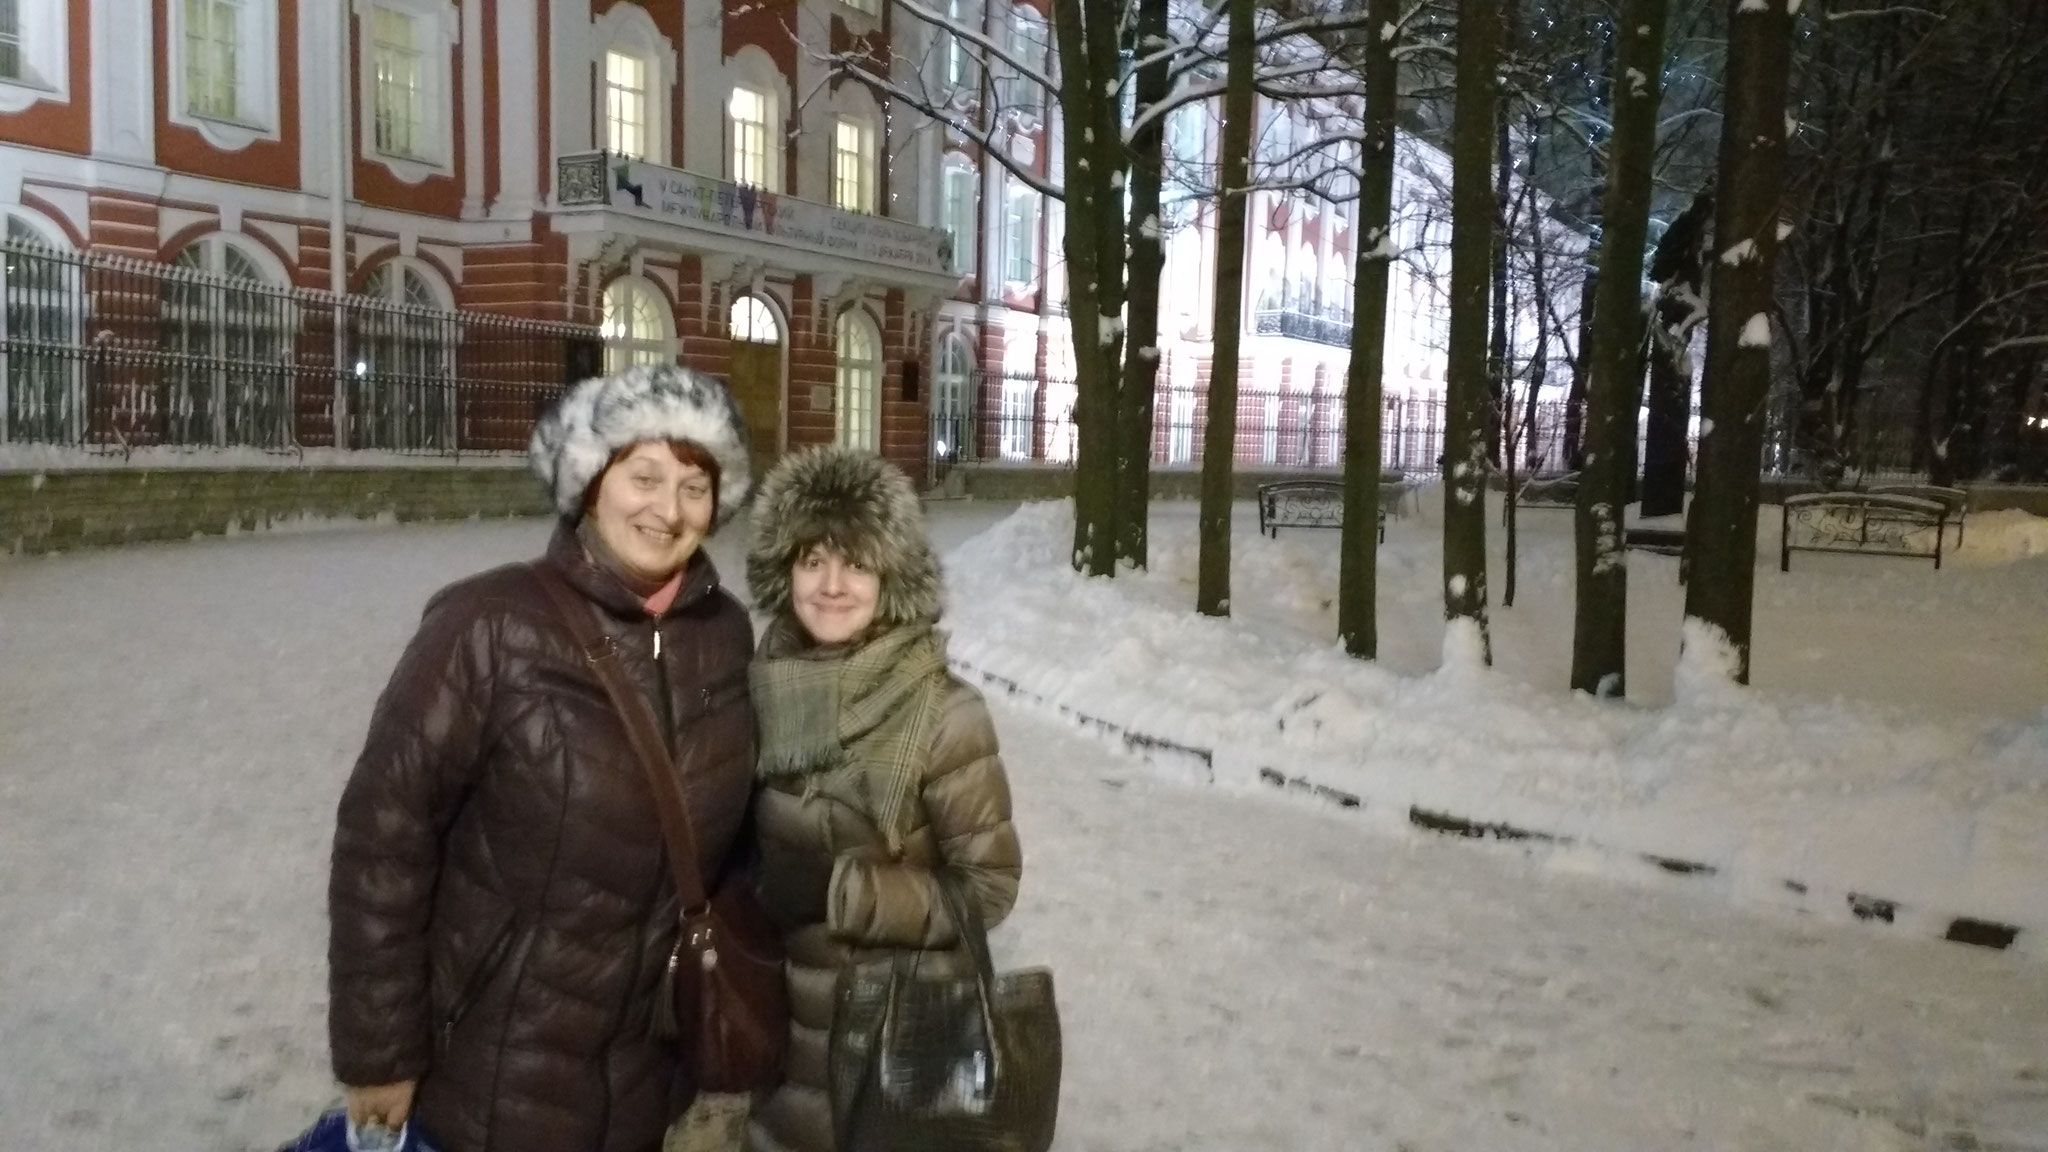 Lyudmila Milchakova (SPb Conservatoire) and Dasha (student) outside St Petersburg University.